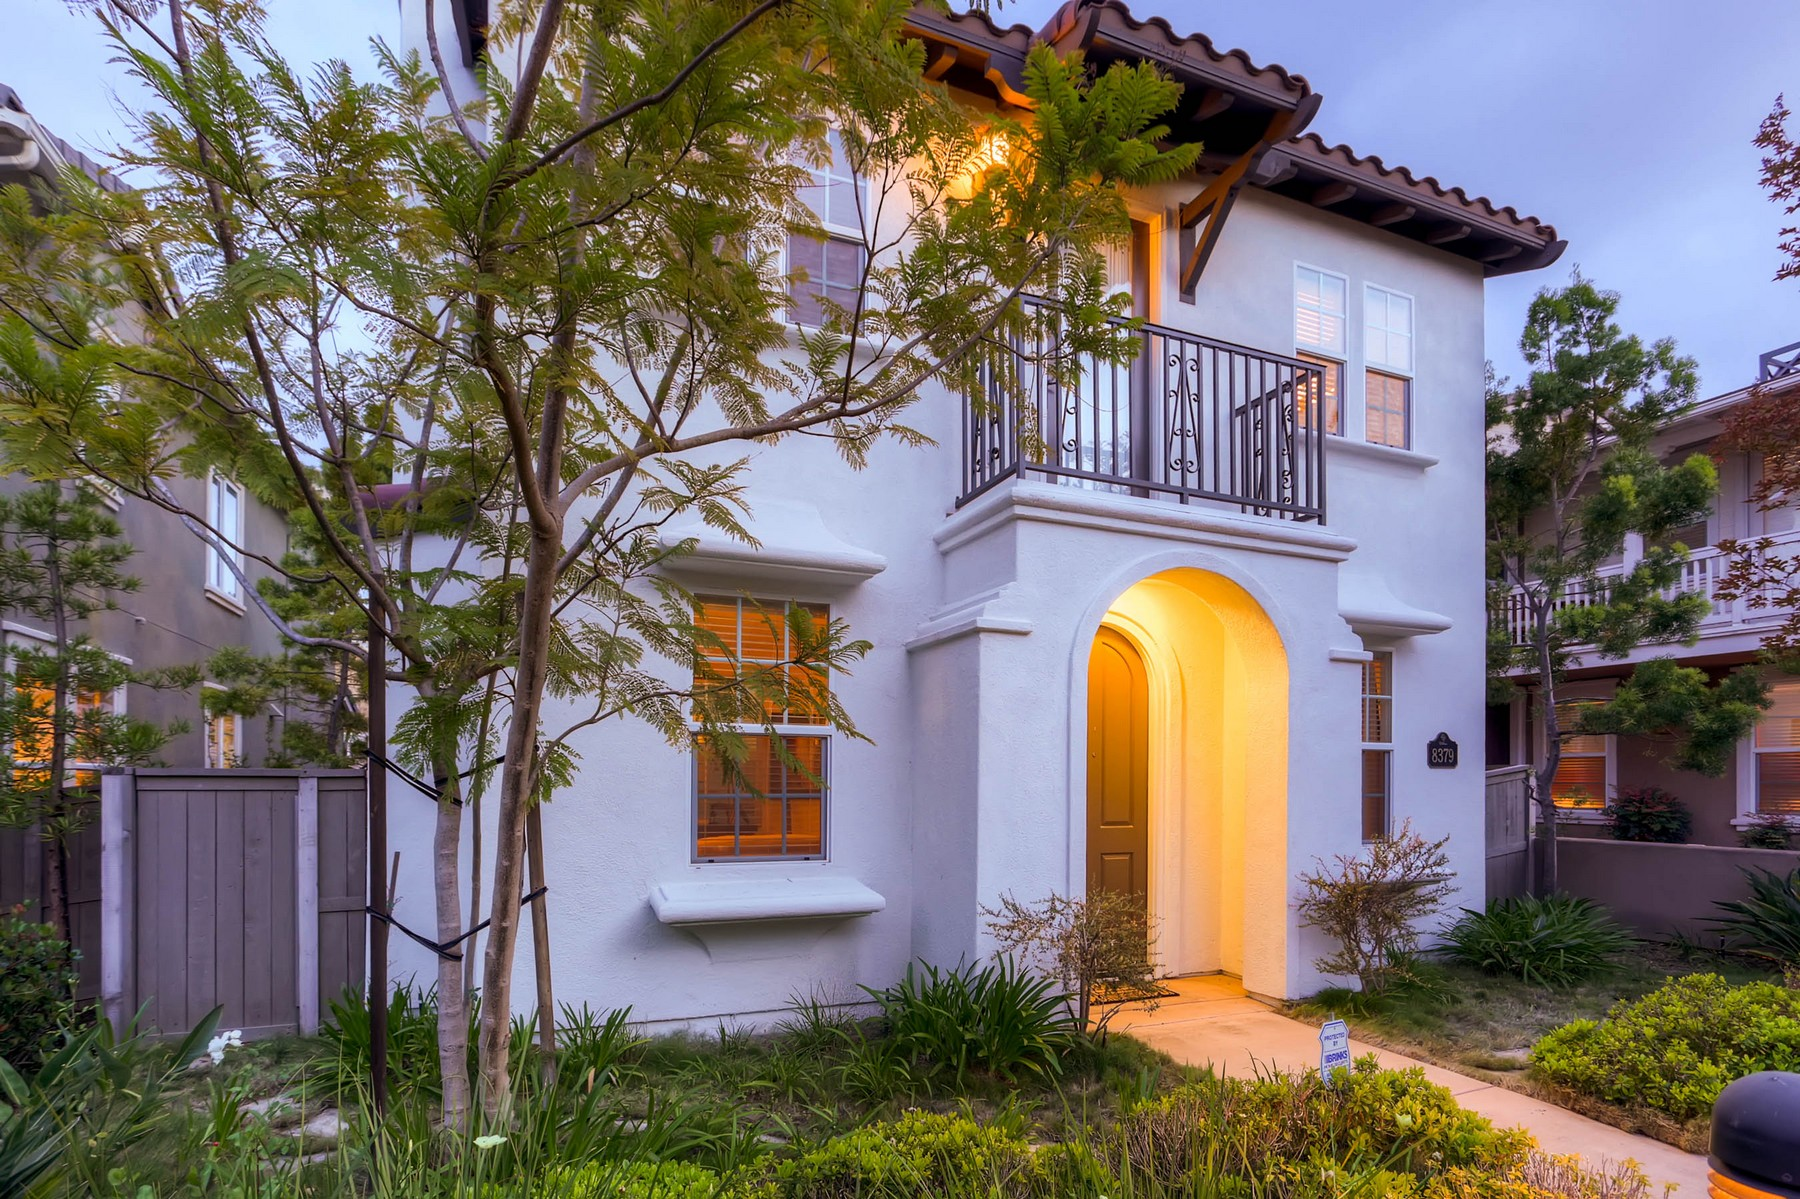 Single Family Home for Sale at 8379 Katherine Claire Rancho Bernardo, San Diego, California 92127 United States